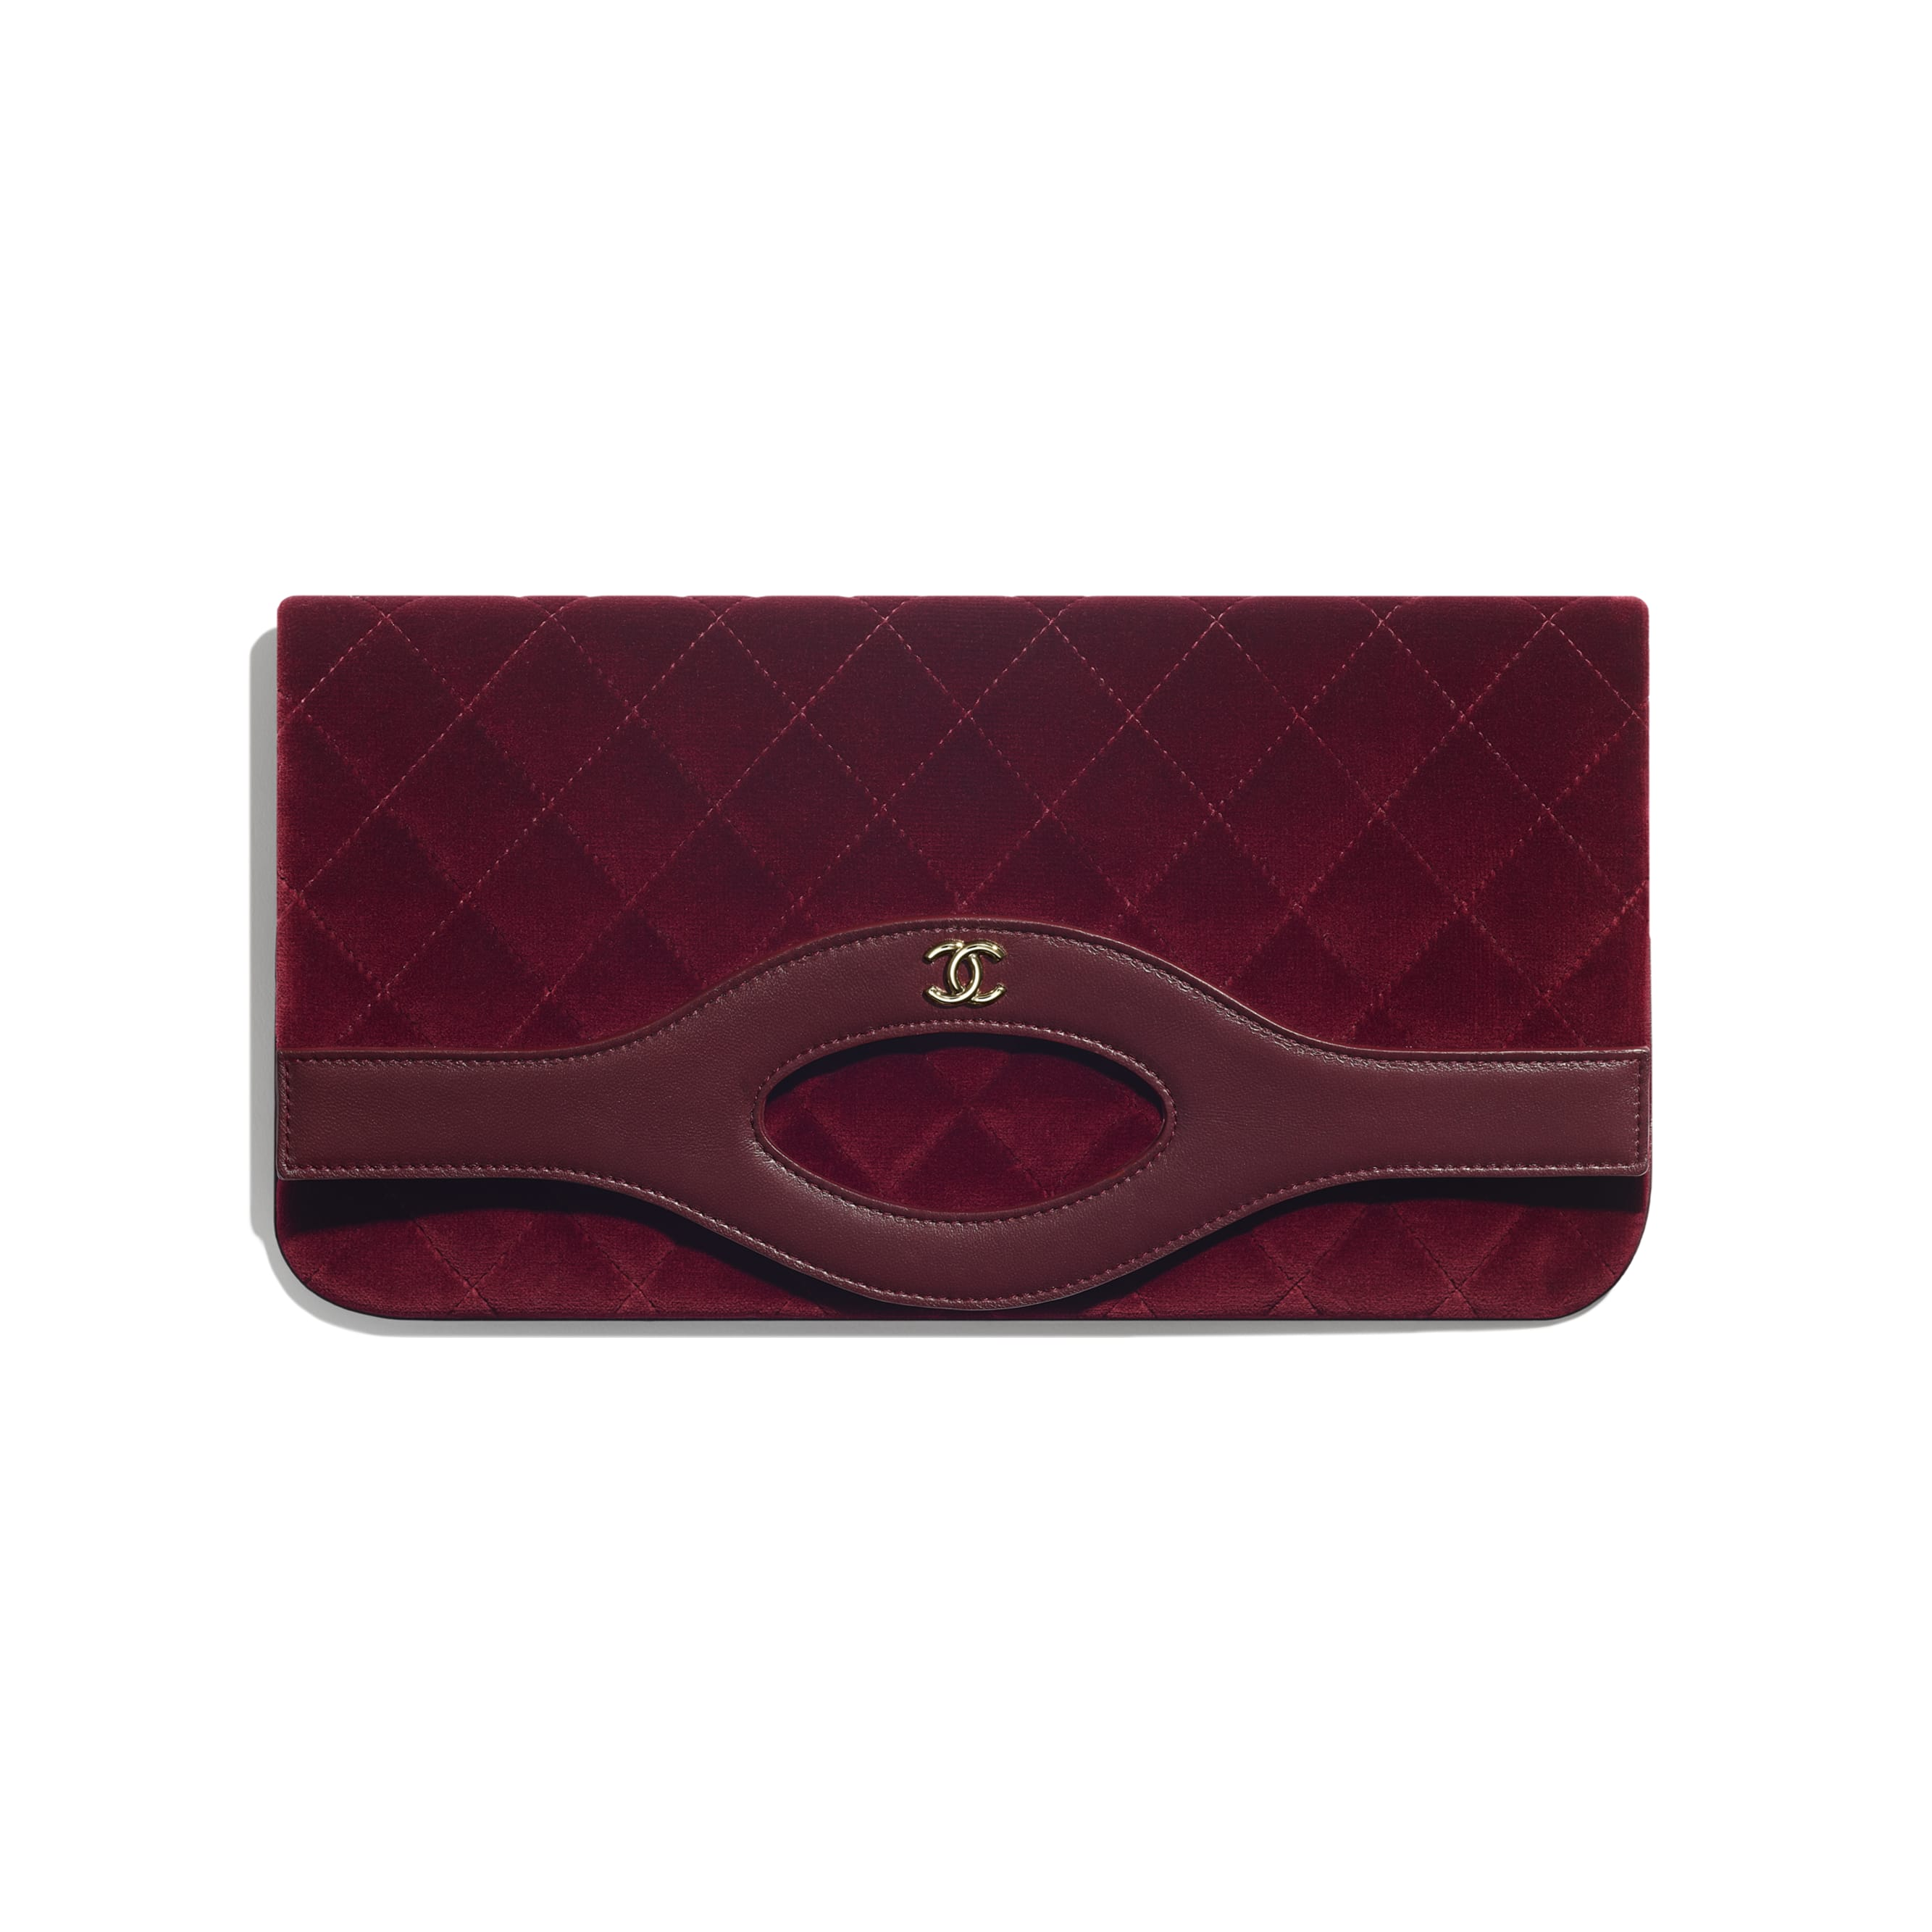 CHANEL 31 Pouch - Burgundy - Velvet, Lambskin & Gold Metal - Default view - see standard sized version